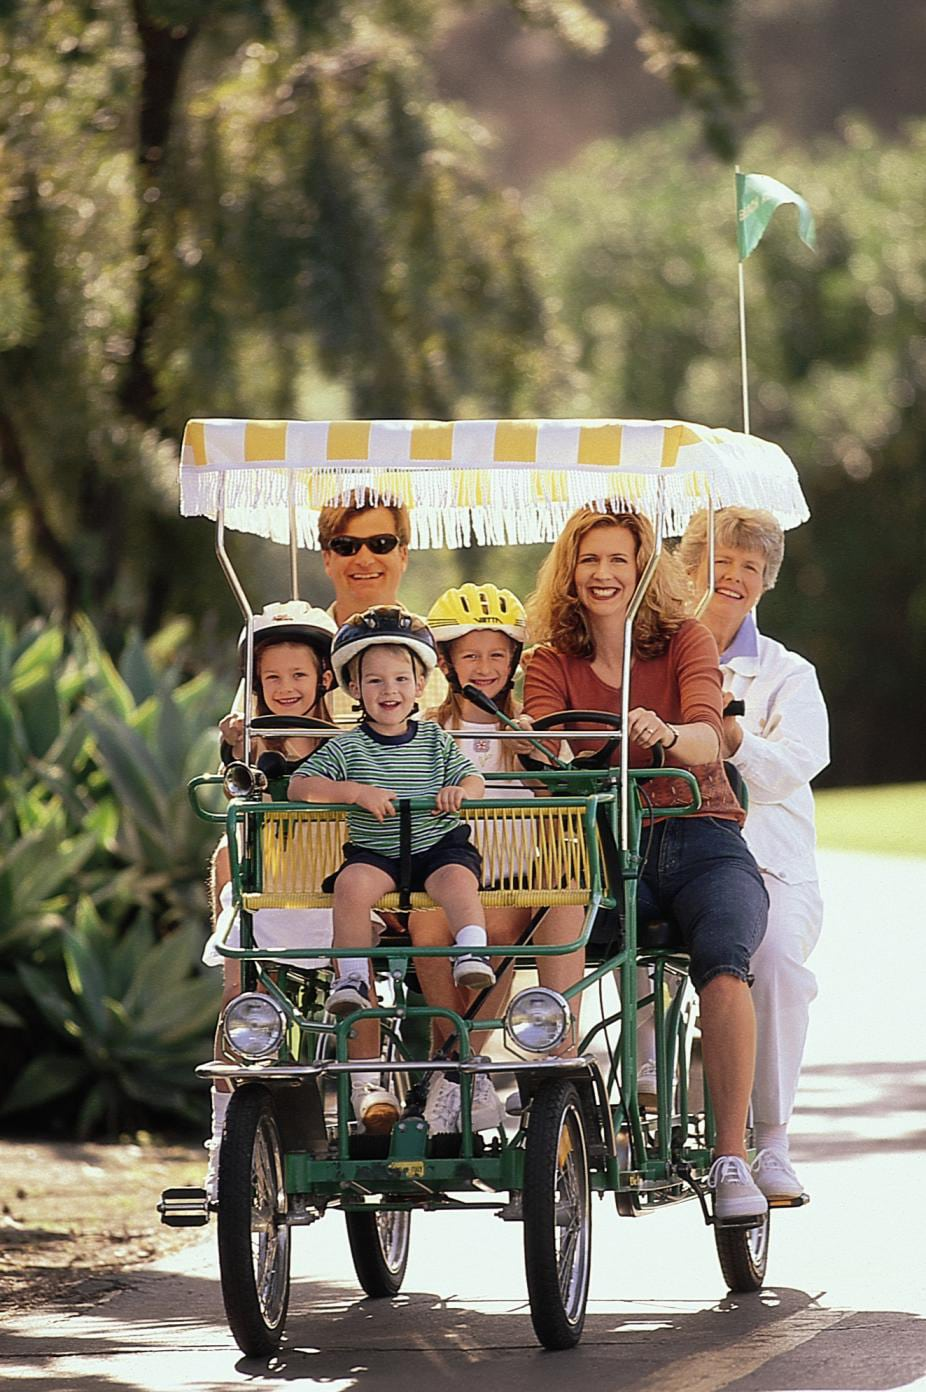 A multigenerational family riding a surrey bike down a sidewalk in Santa Barbara.